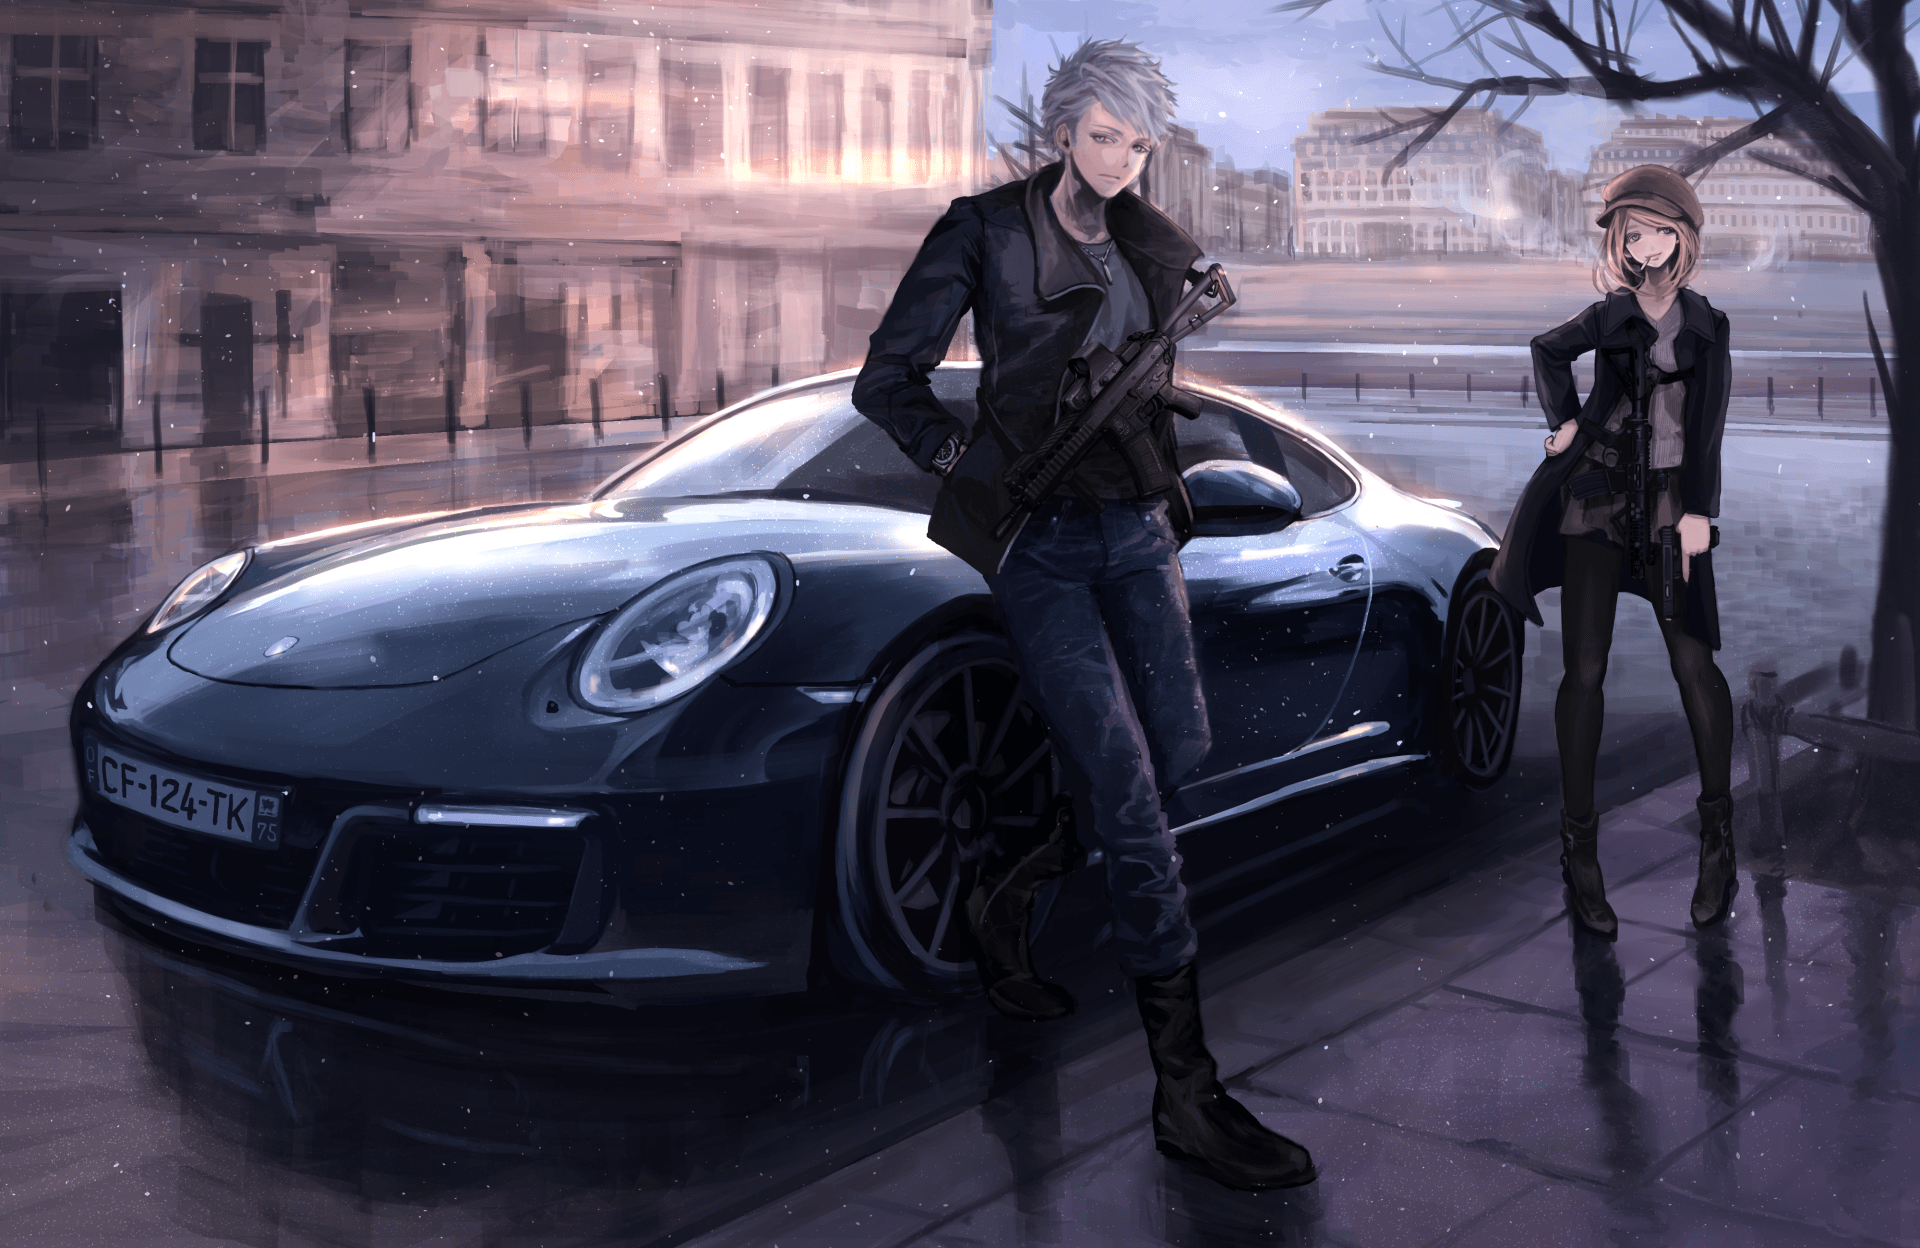 Girl And Sport Car Wallpaper Anime Art 4k Ultra Hd Wallpaper And Background Image